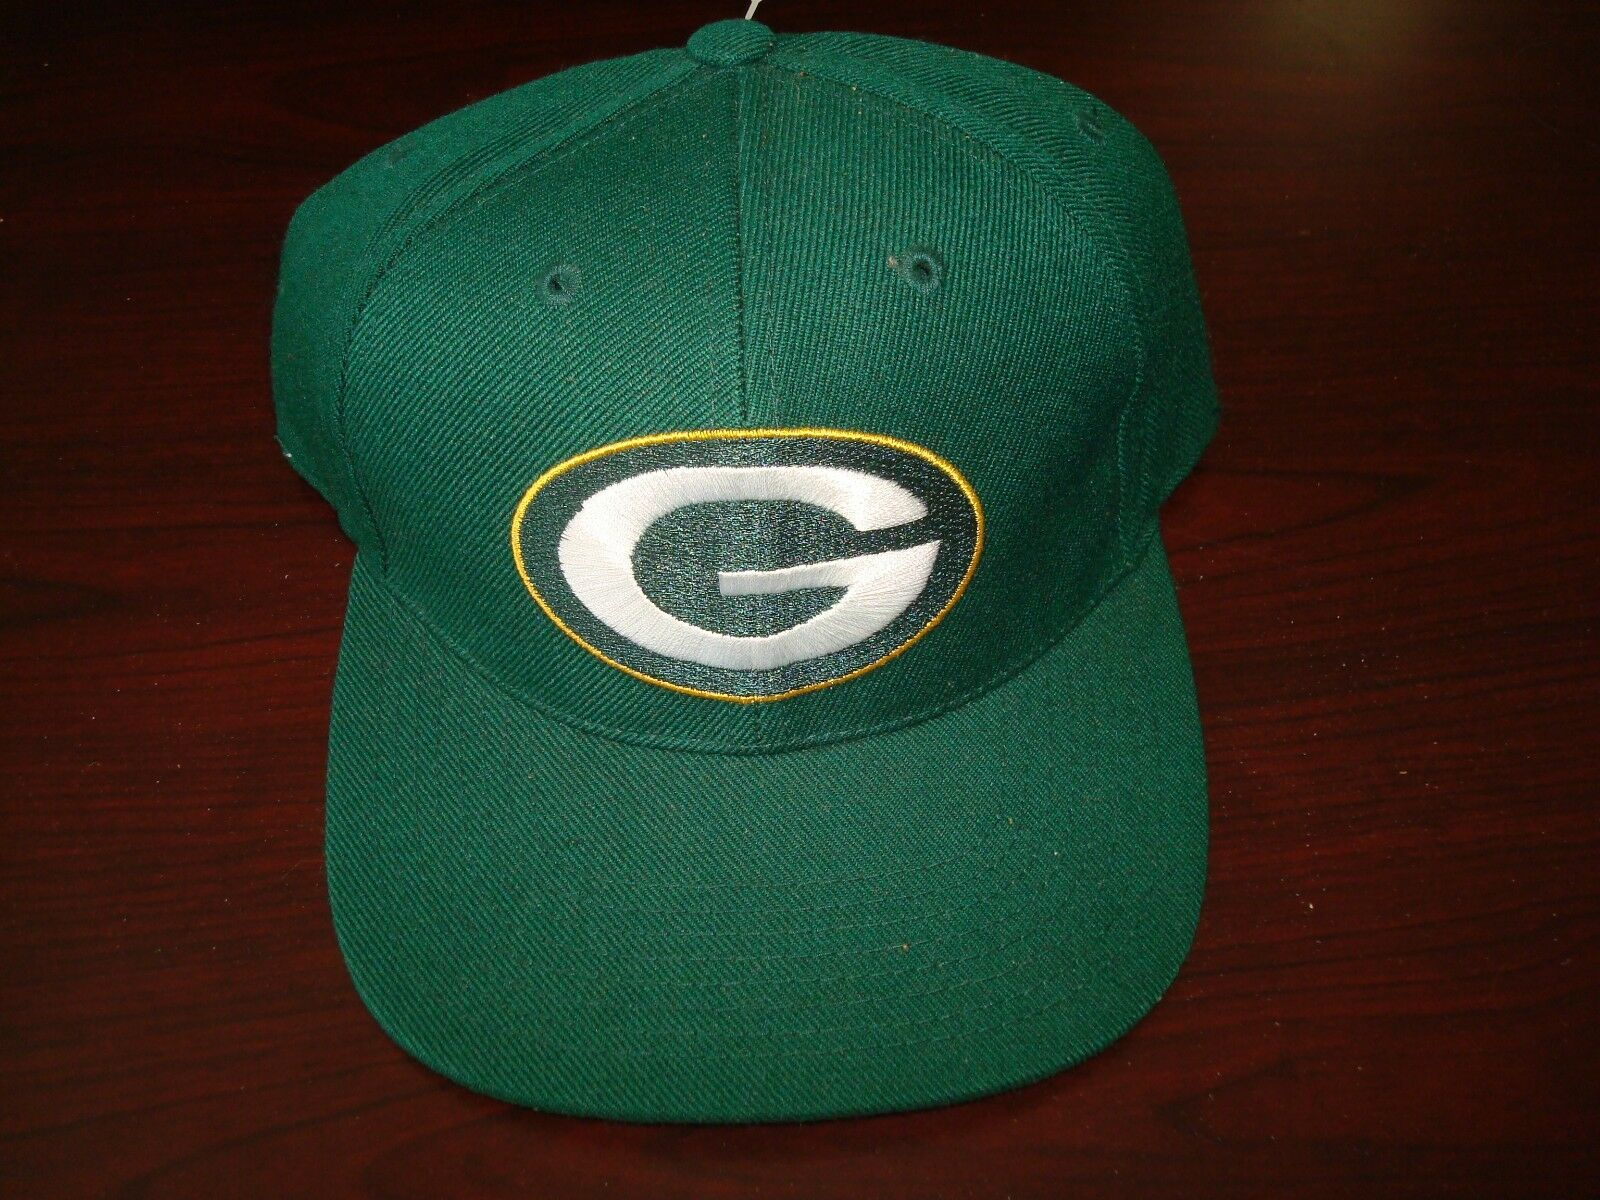 GREEN BAY PACKERS SPORTS SPECIALTIE RARE LEAF   LEAF FITTED SZ 7 1/8  HAT CAP VINTAGE 264dfe